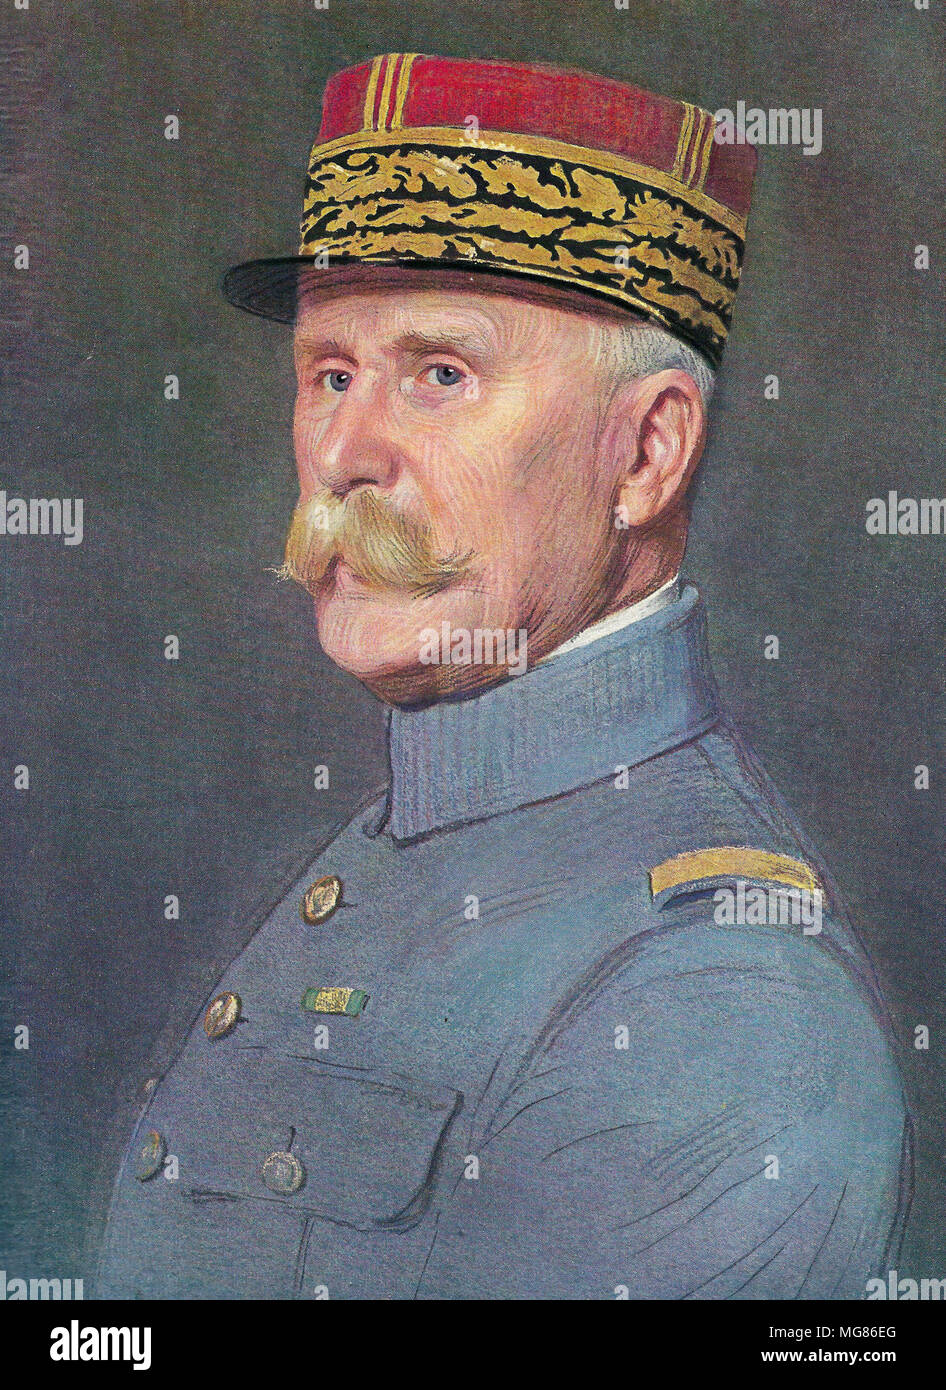 Maréchal Pétain in 1926 by Marcel Baschet  Henri Philippe Benoni Omer Joseph Pétain (1856 – 1951), Philippe Pétain, Marshal Pétain, French general officer who attained the position of Marshal of France at the end of World War I, during which he became known as The Lion of Verdun, and in World War II served as the Chief of State of Vichy France from 1940 to 1944 - Stock Image